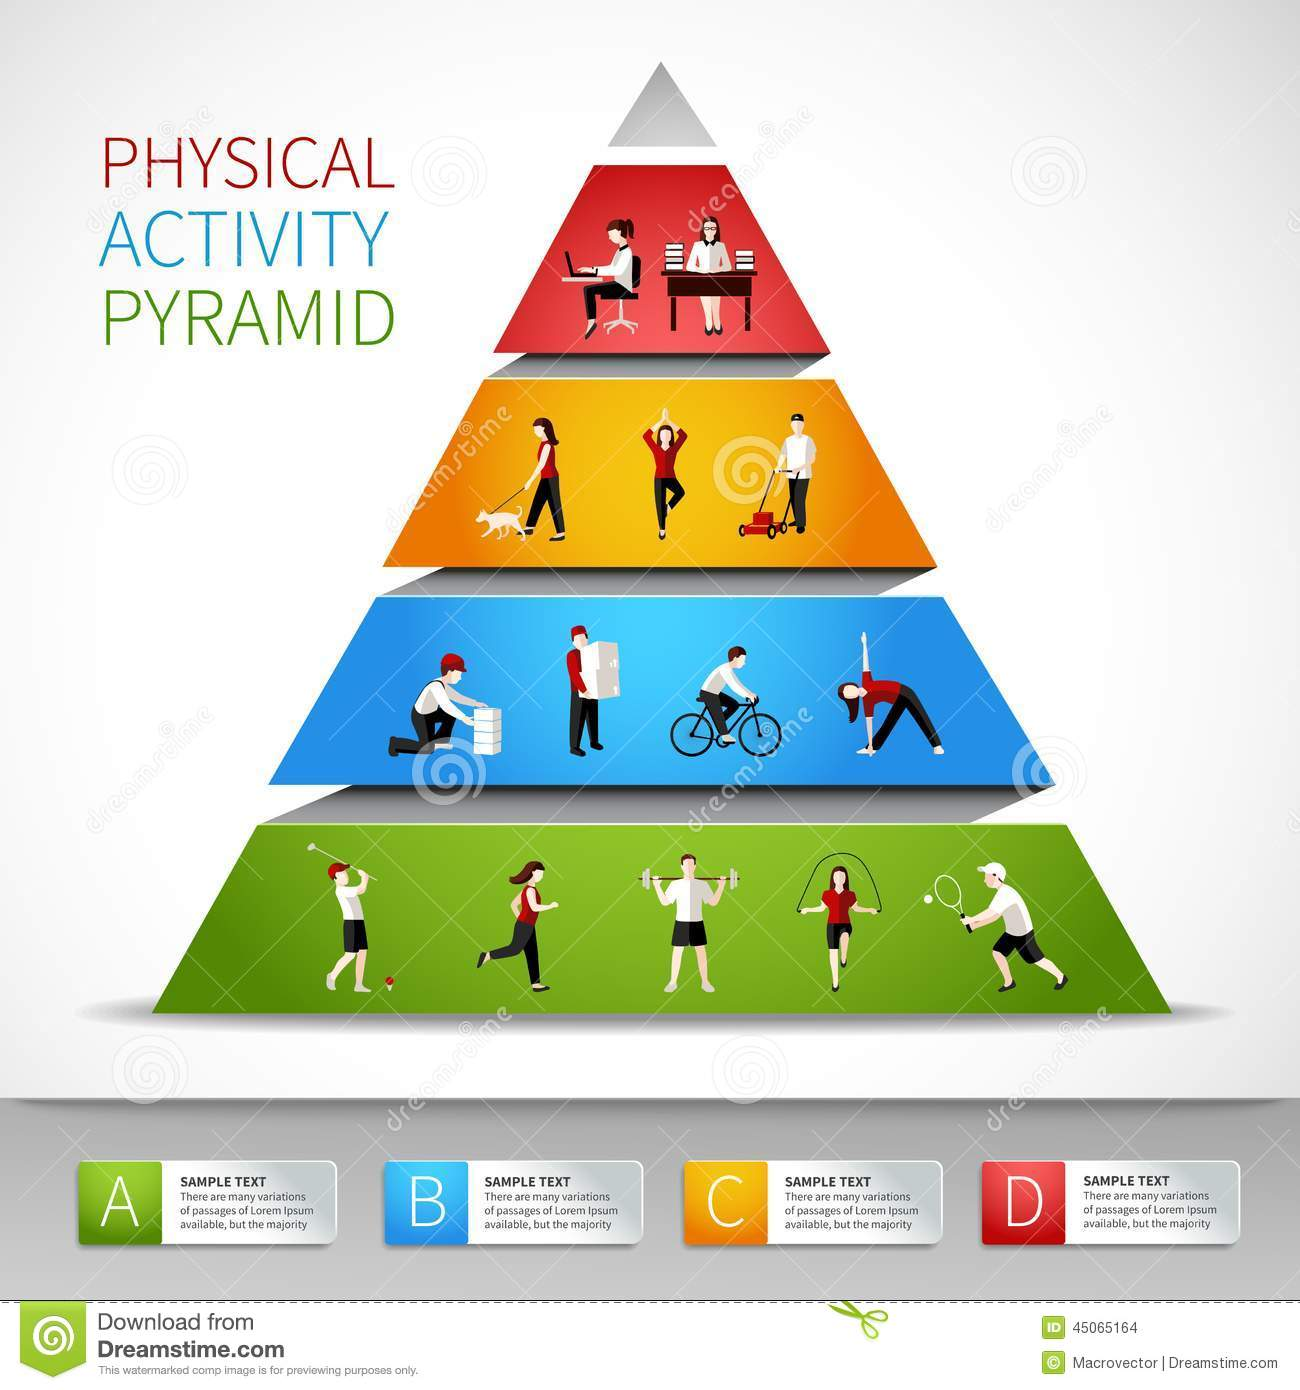 Physical Activity Pyramid Infographic Stock Vector - Image: 45065164